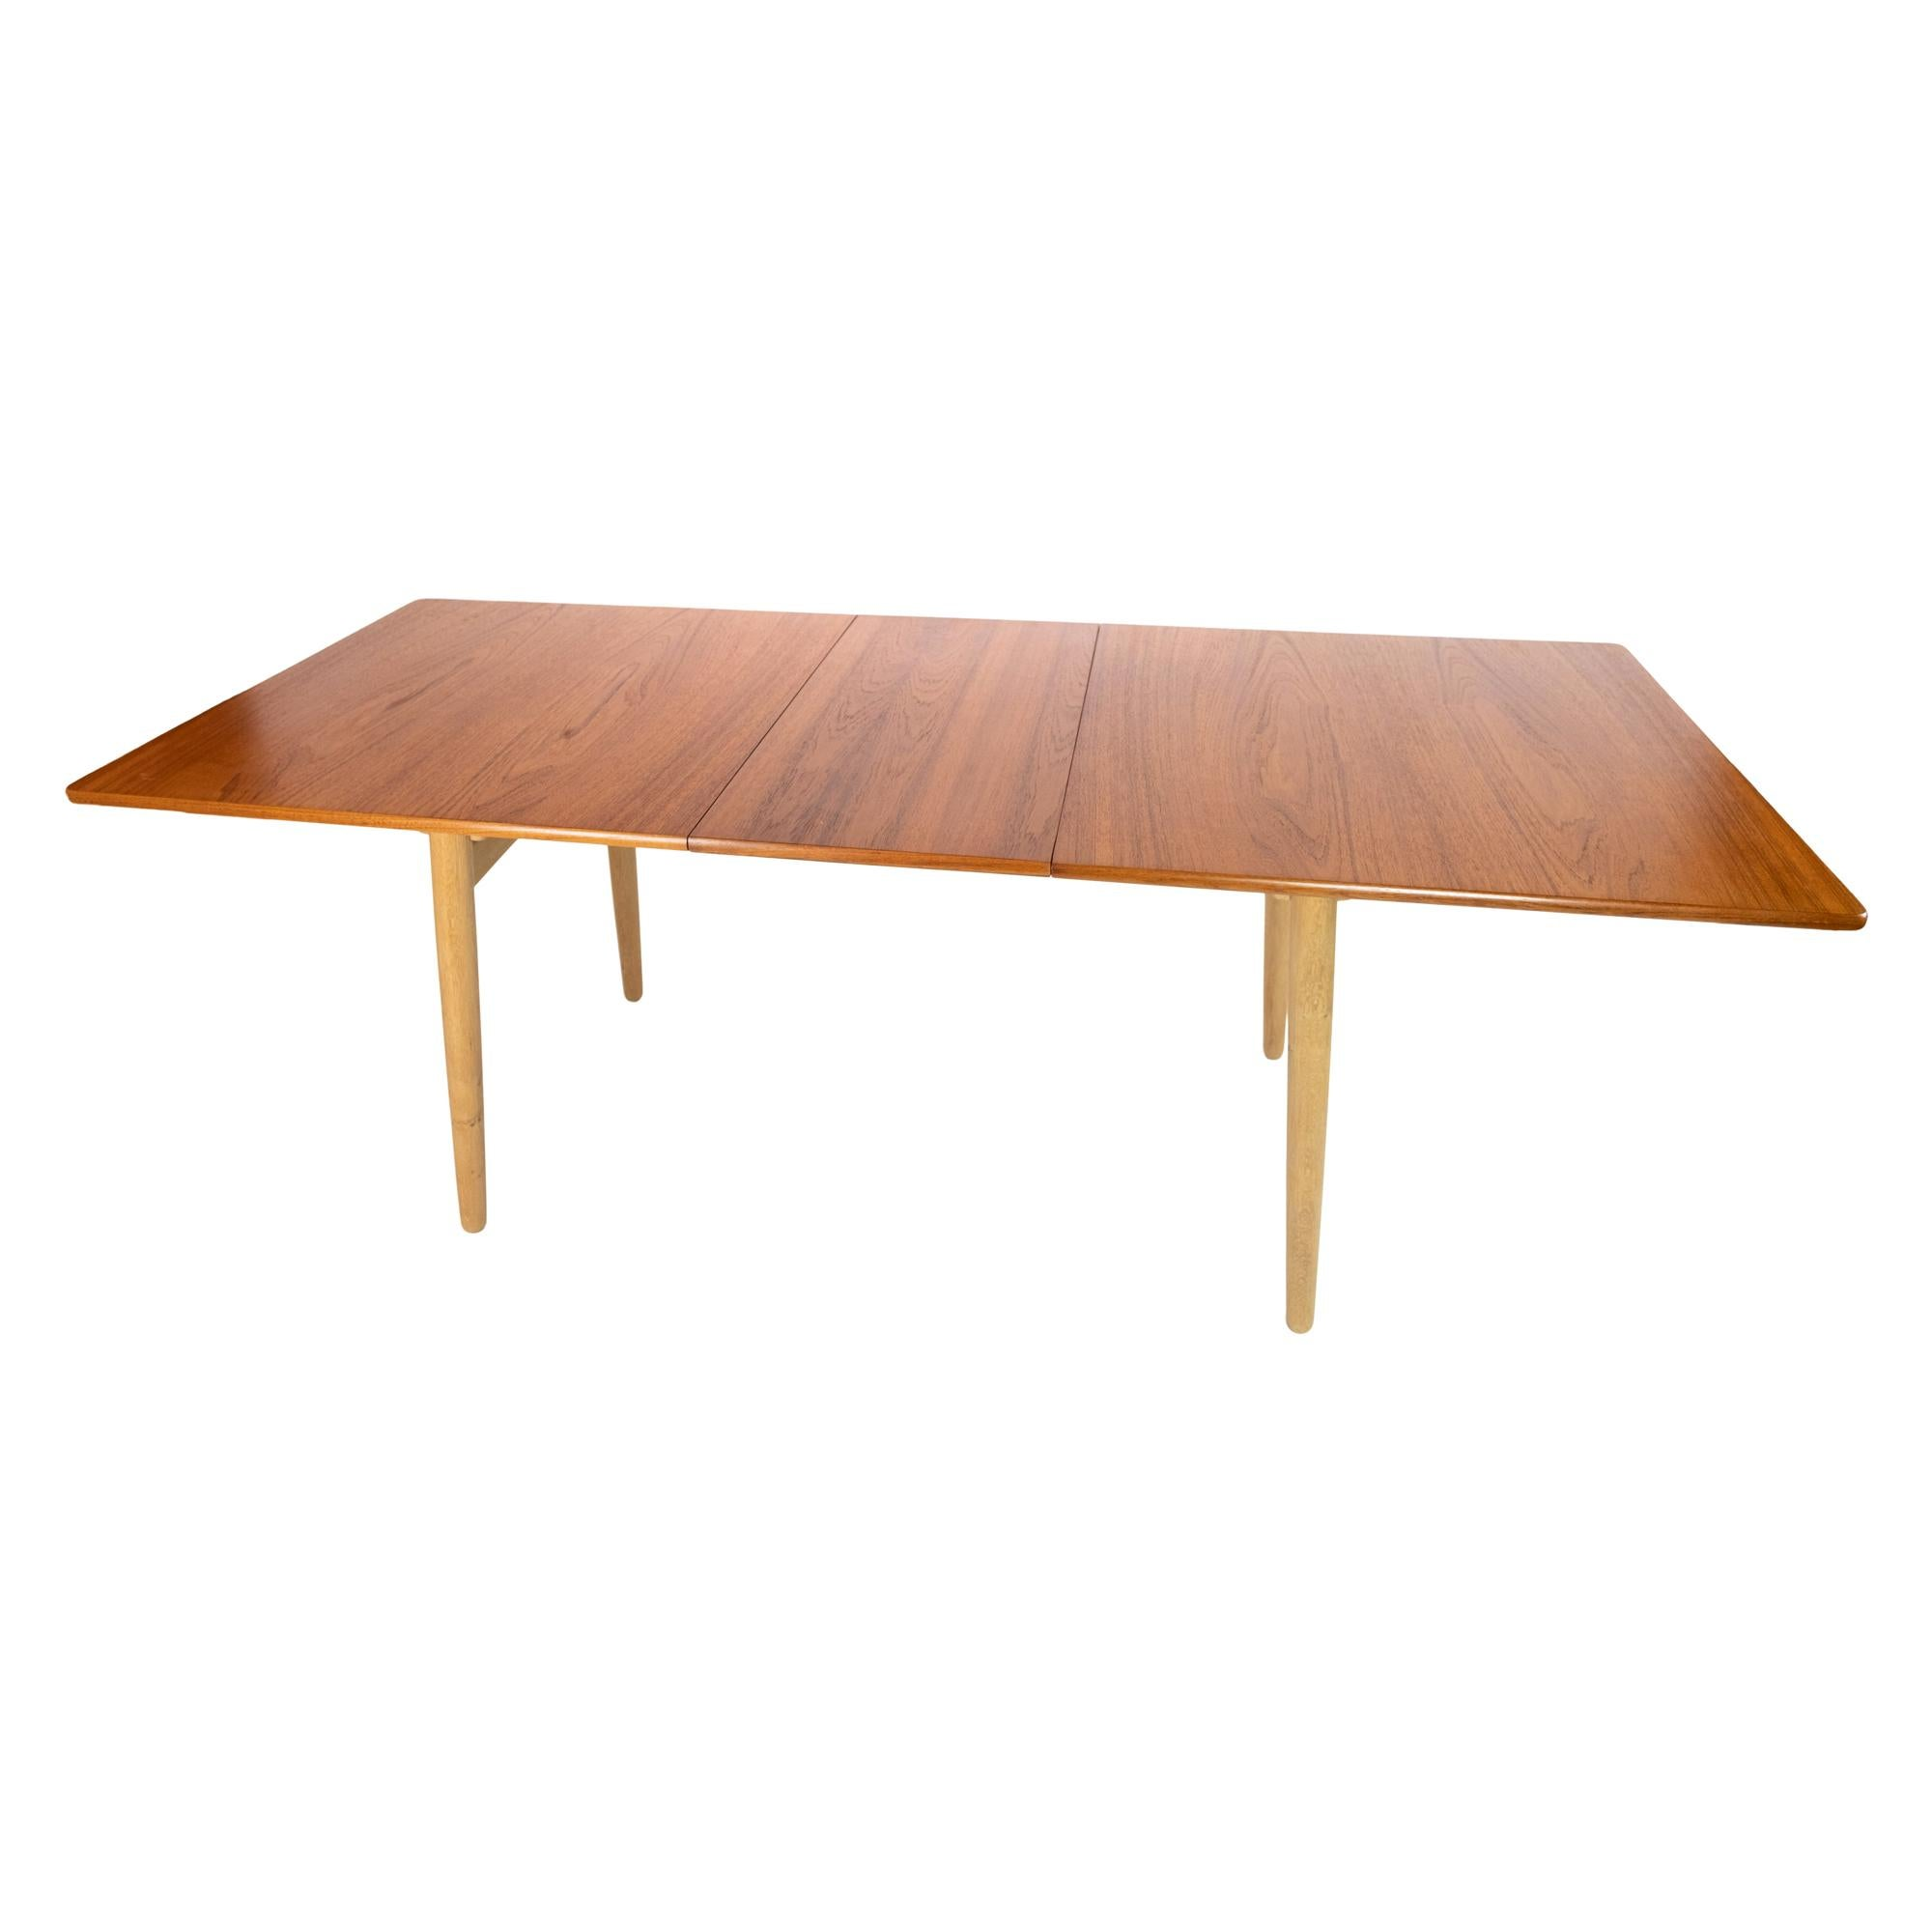 Dining Table in Teak and Oak with Extensions Designed by Hans J. Wegner